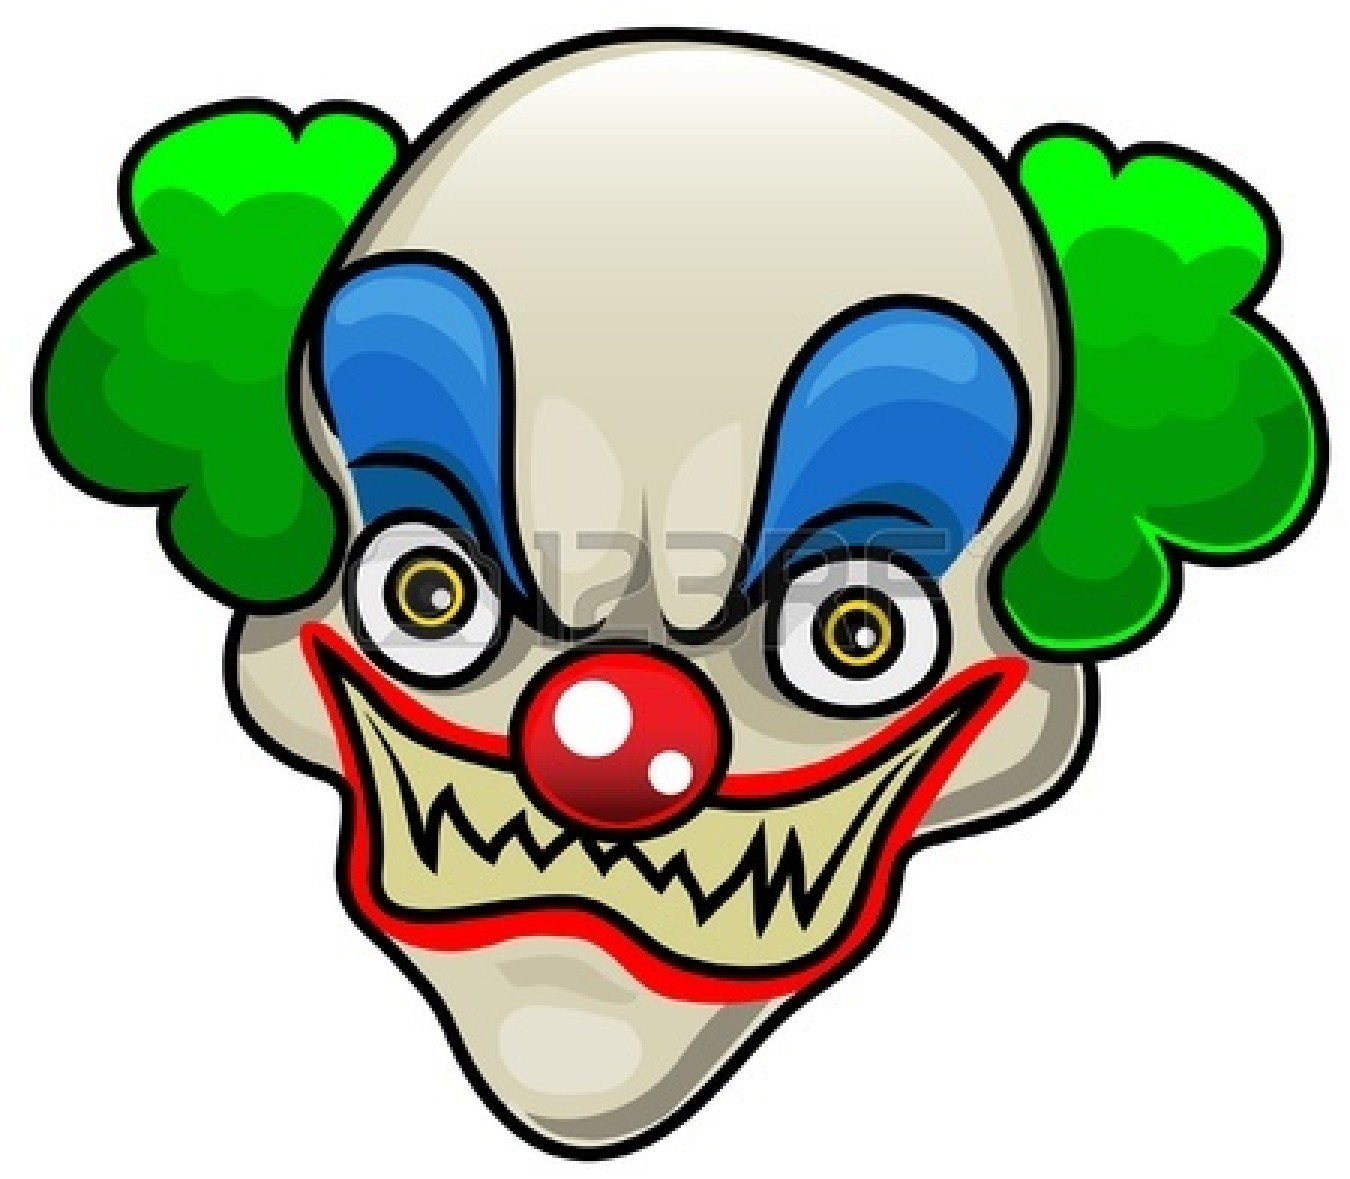 Halloween Clown Clipart - Clipart Kid